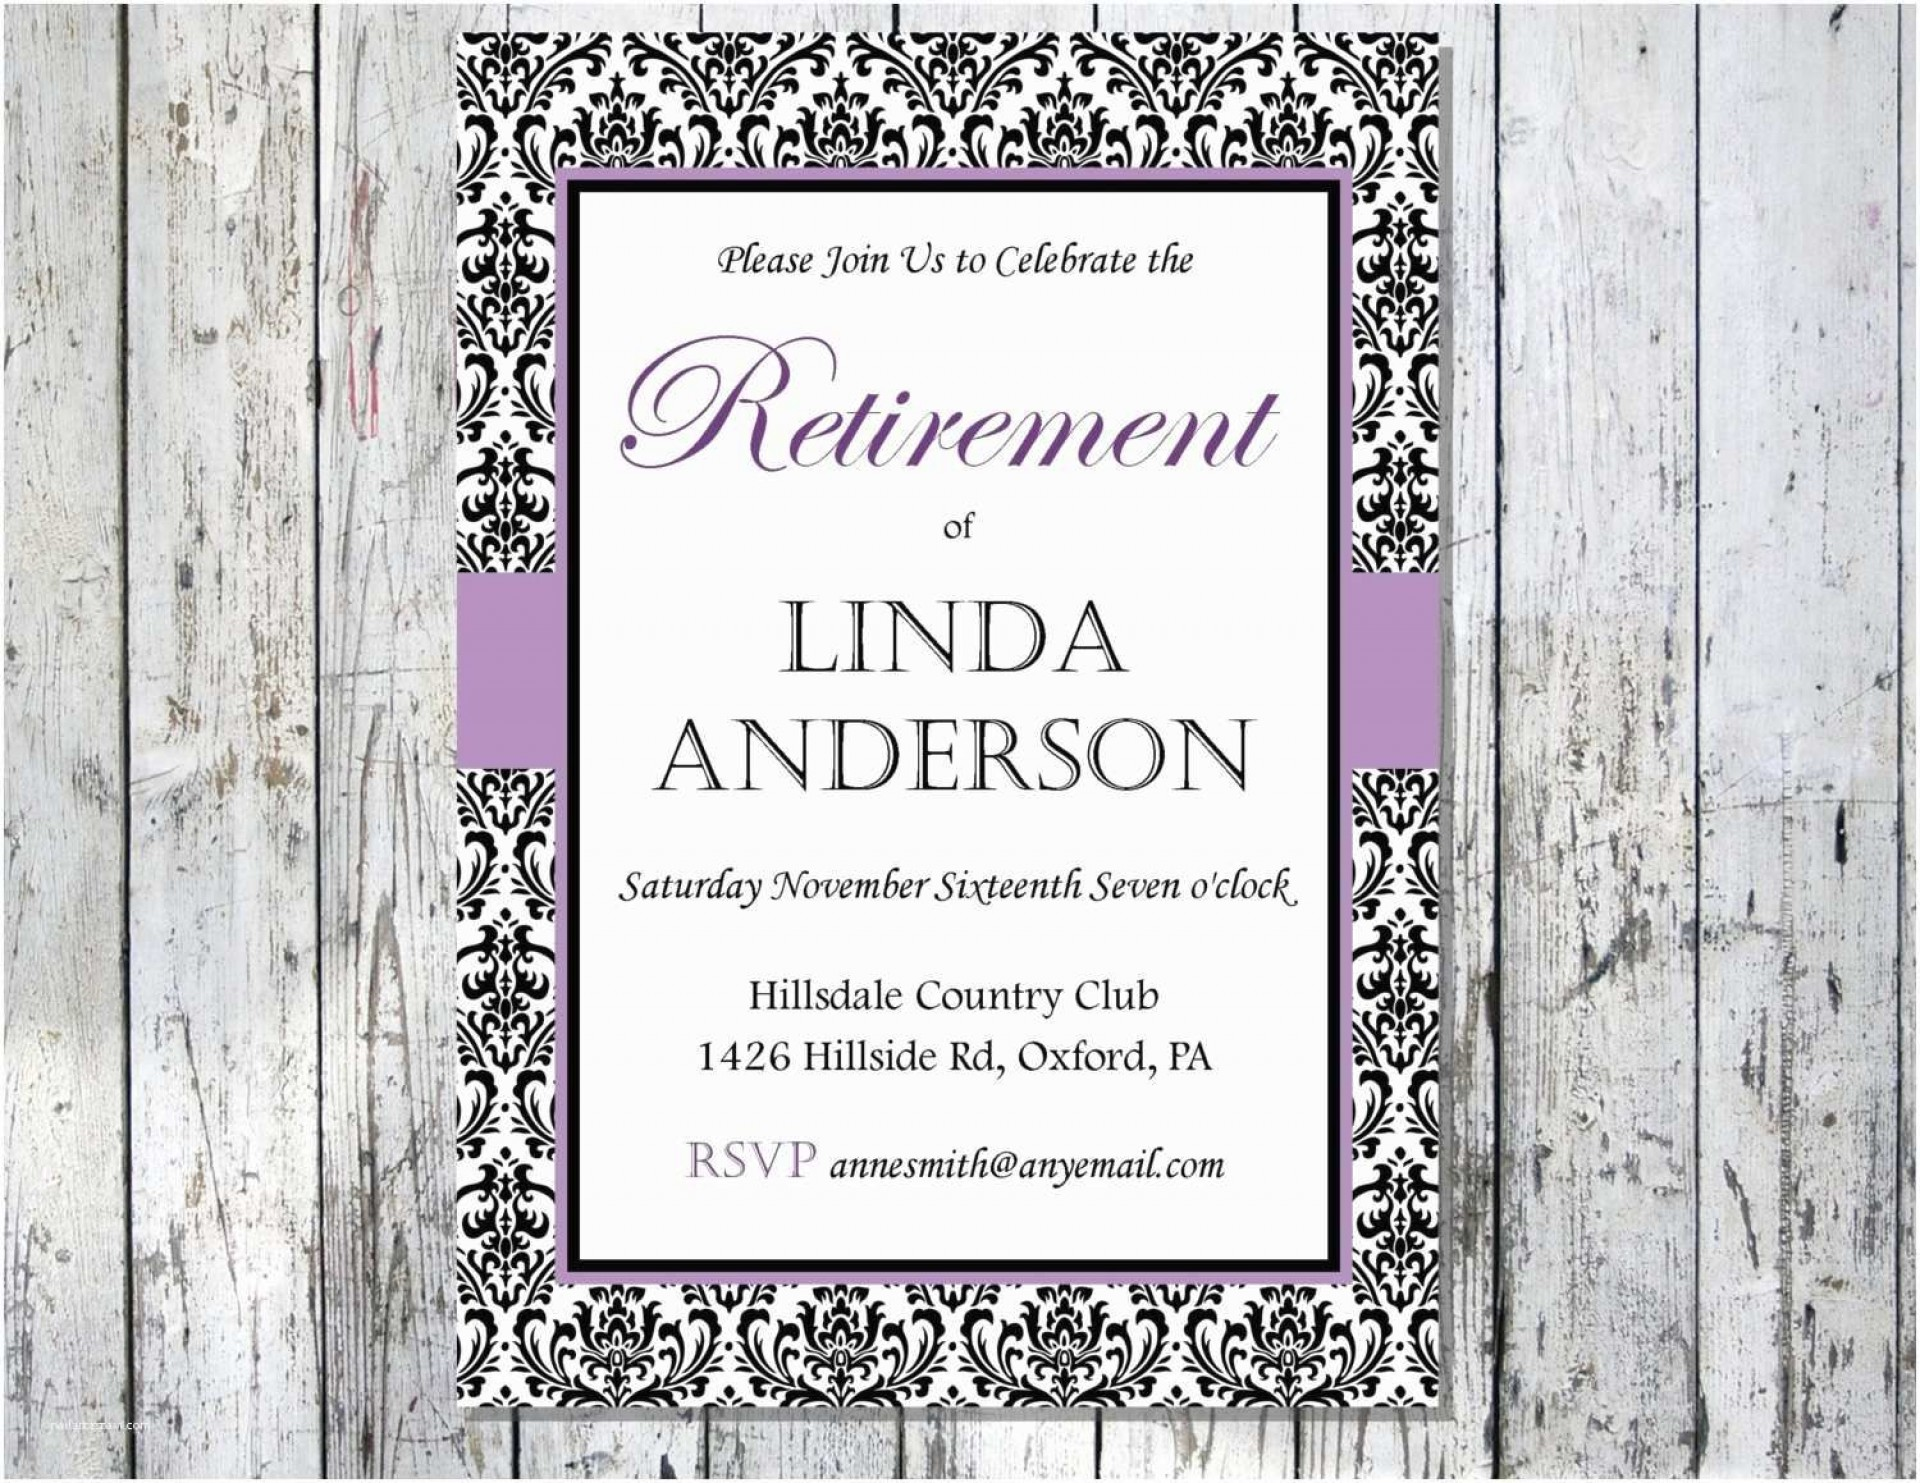 007 Excellent Free Retirement Invitation Template Idea  Templates Microsoft Word Party Flyer1920